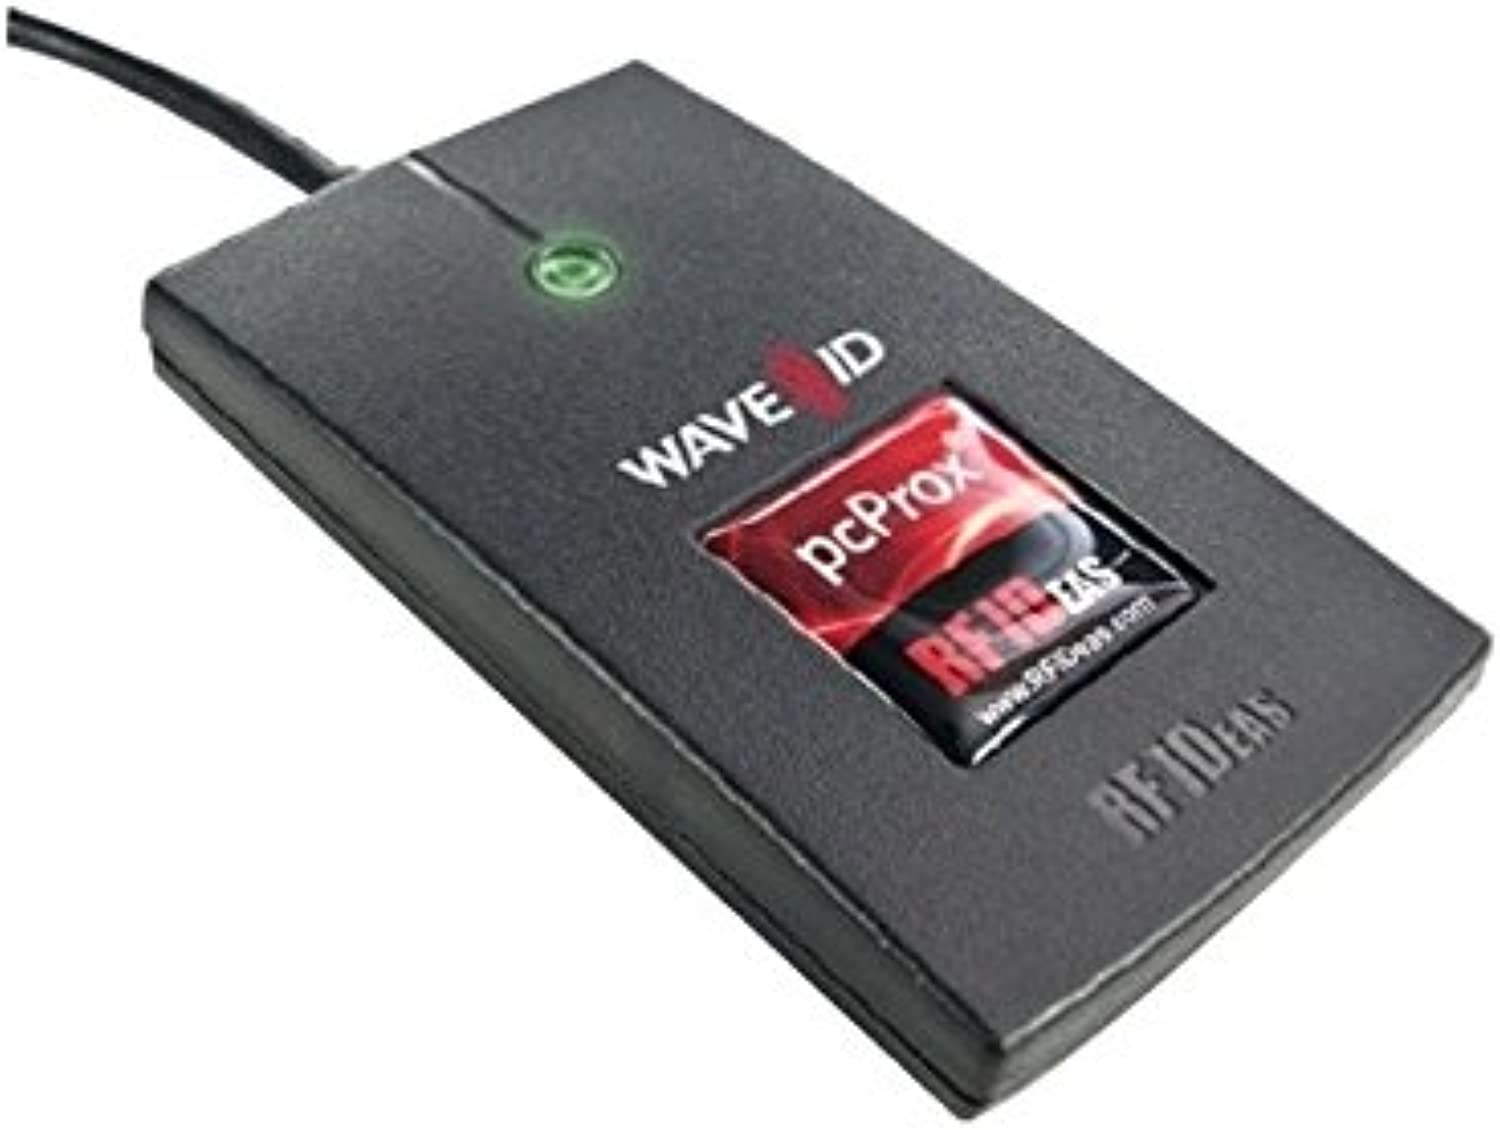 Rf Ideas Pc Prox Rf Ideas Reader Indala 26 Bit USB Independent Software Required